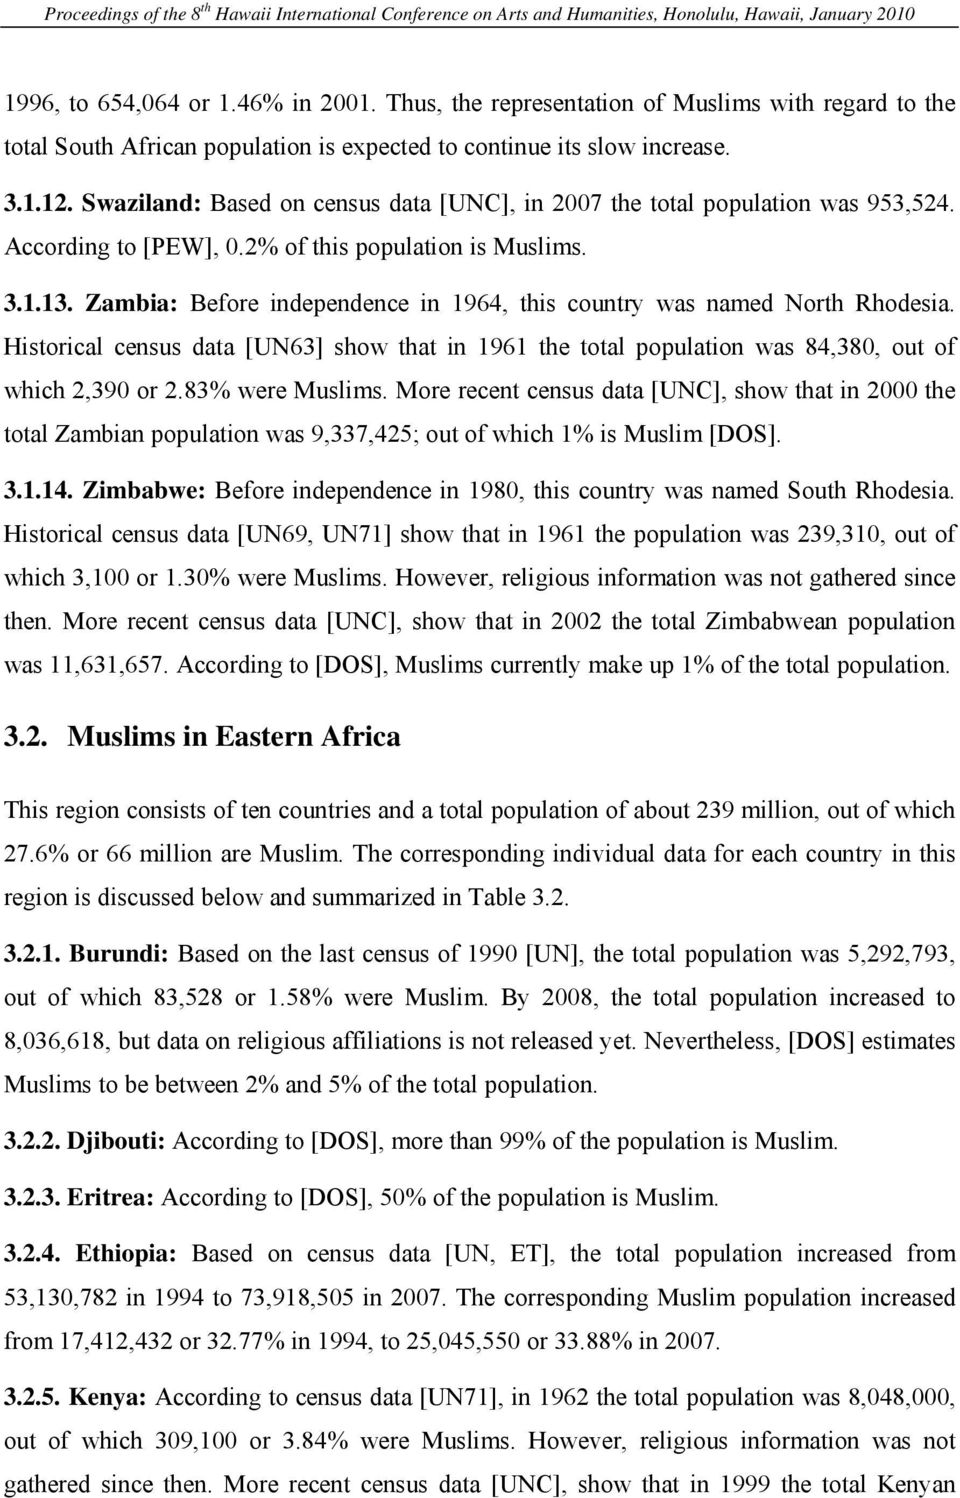 Zambia: Before independence in 1964, this country was named North Rhodesia. Historical census data [UN63] show that in 1961 the total population was 84,380, out of which 2,390 or 2.83% were Muslims.